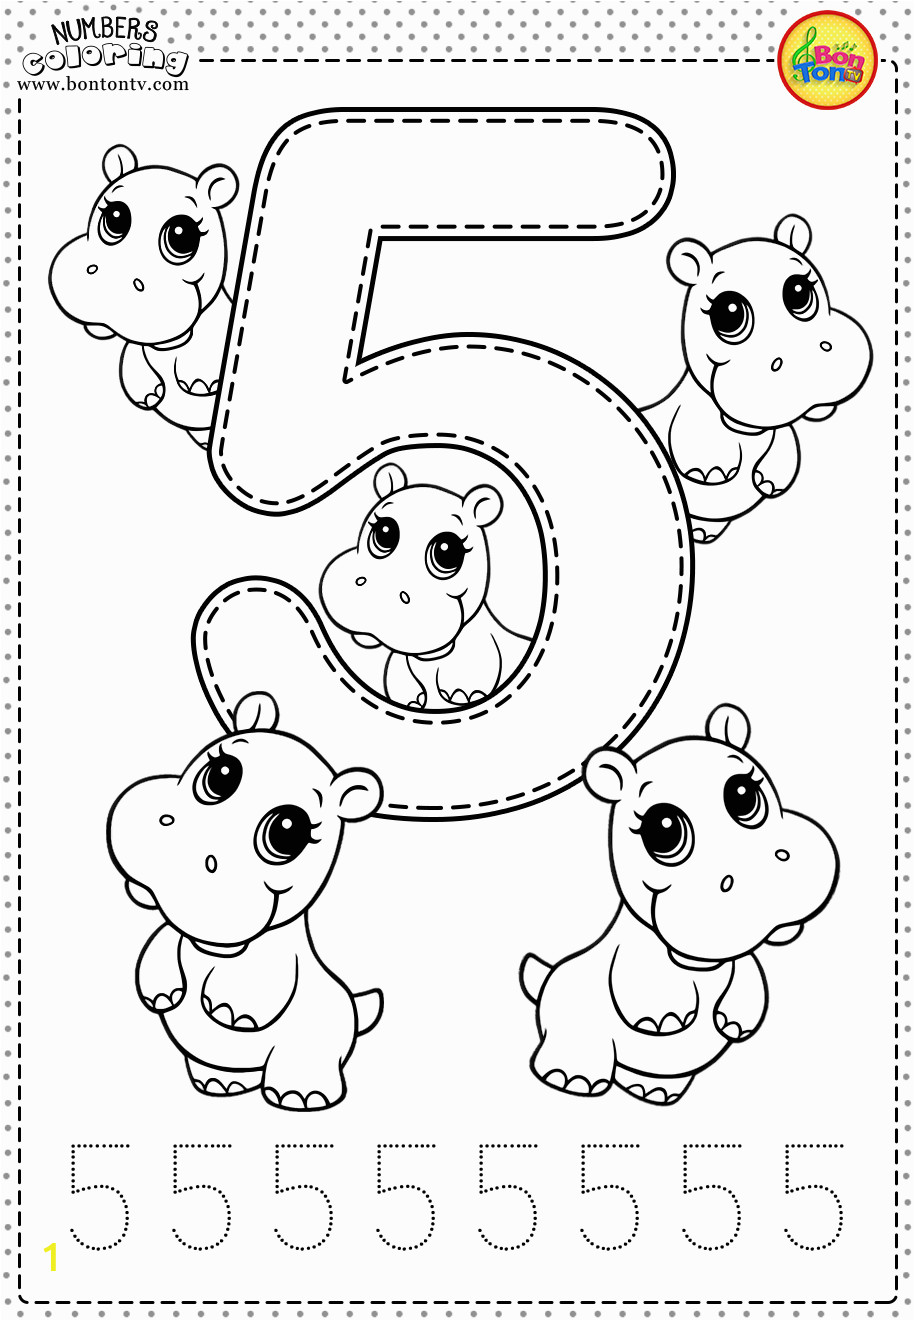 Coloring Pages for Young toddlers Number 5 Preschool Printables Free Worksheets and